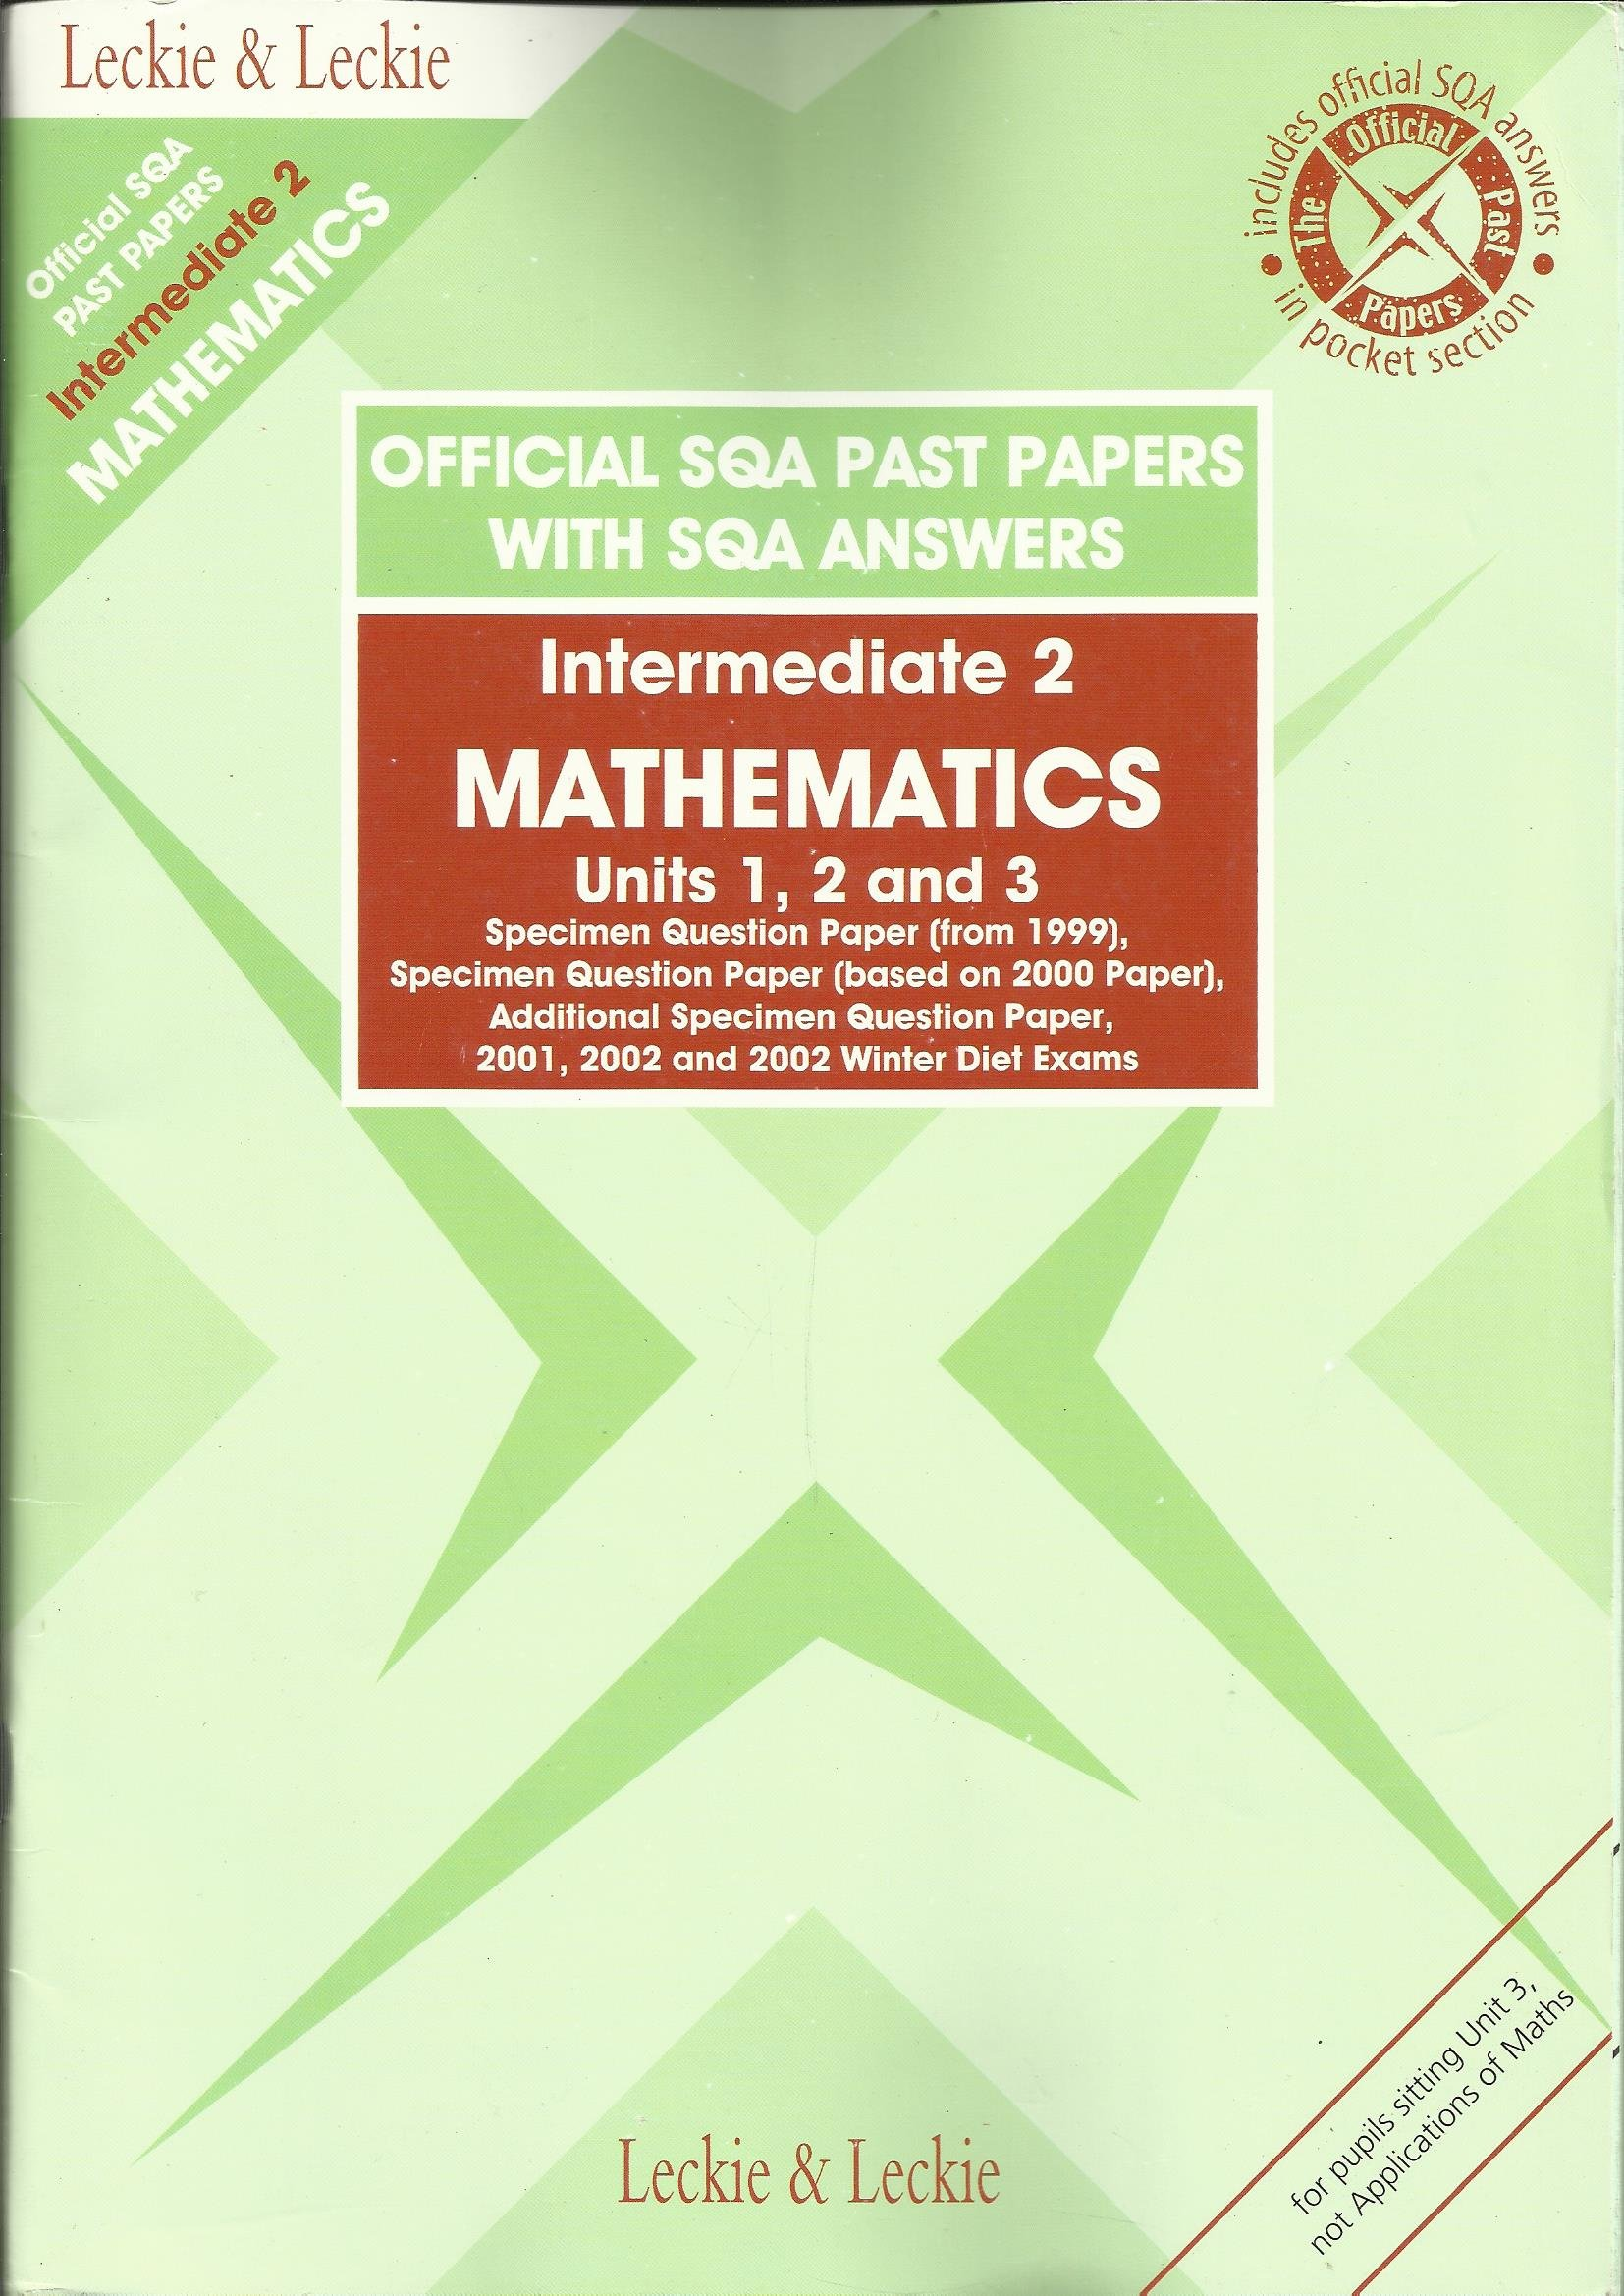 Intermediate 2 maths past papers 2002 ambulette driver resume sample